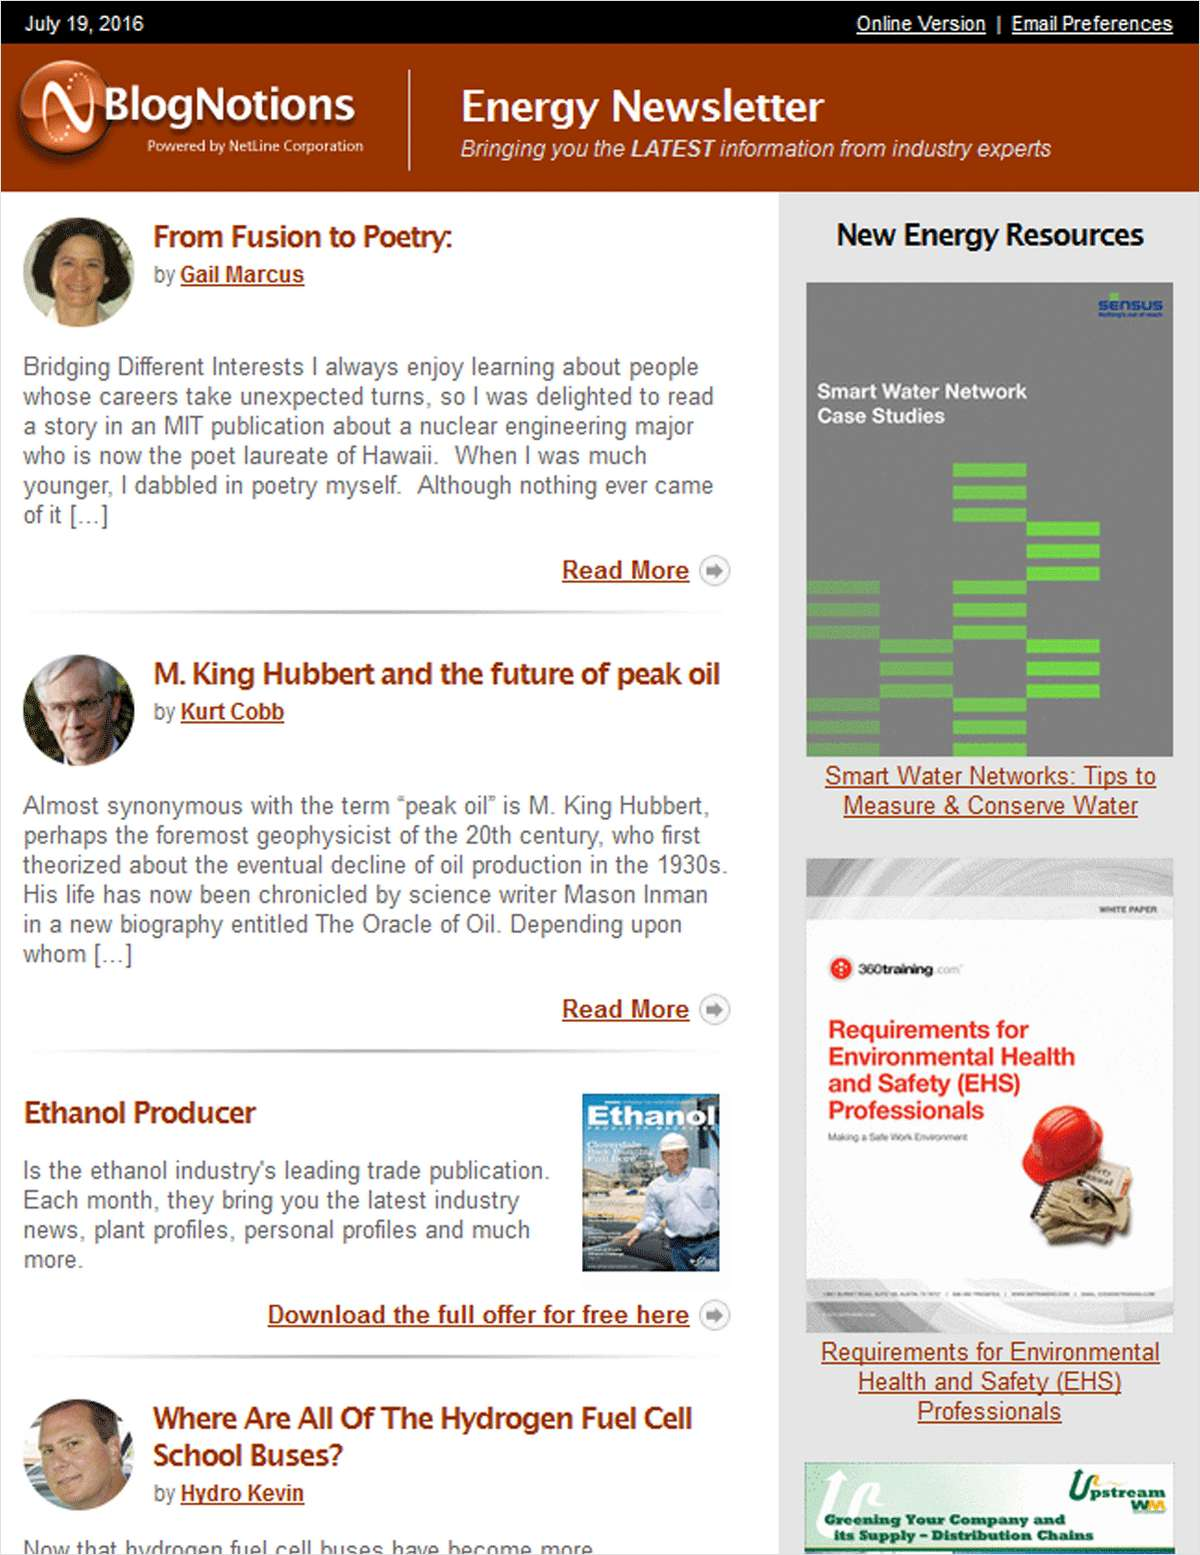 BlogNotions Energy Newsletter: Monthly eNewsletter Featuring Blogs from Industry Experts